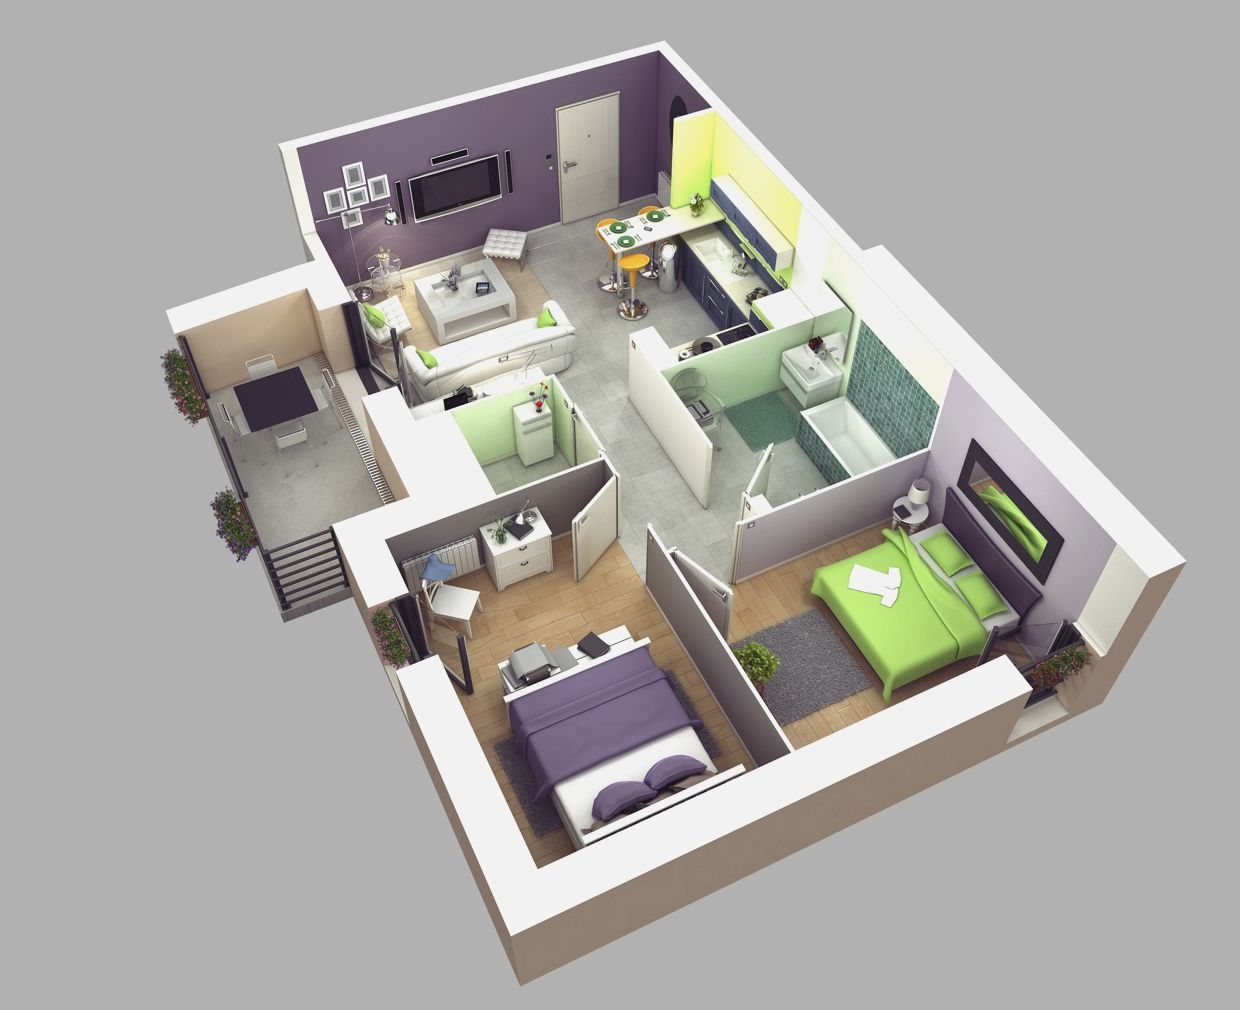 1 bedroom house plans 3d just the two of us apartment ideas pinterest bedrooms house - One bedroom house design ...